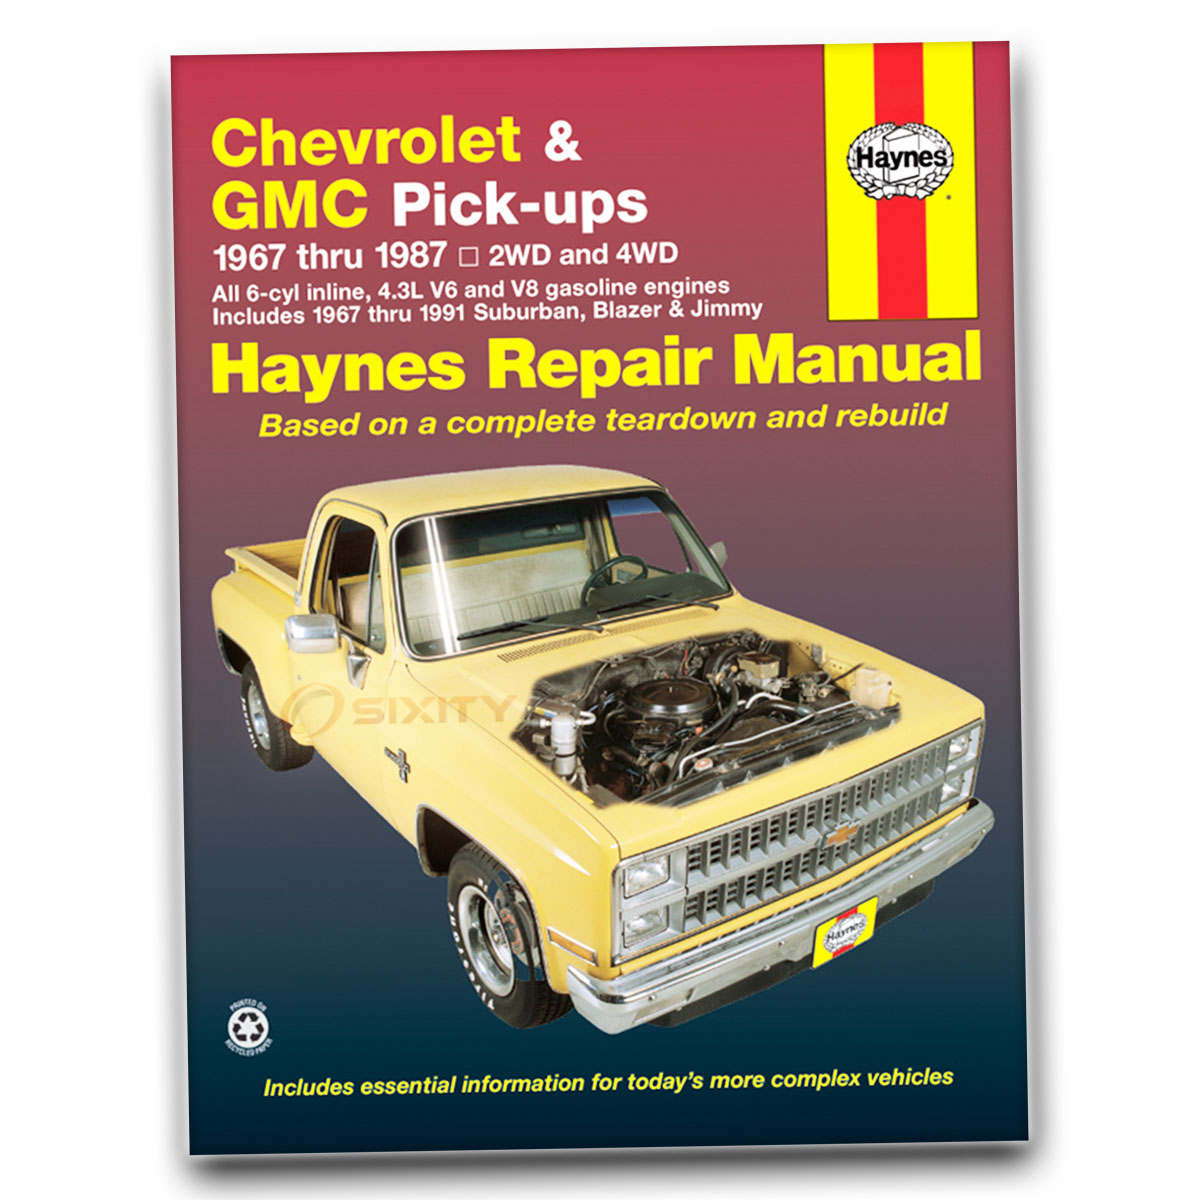 chevy c10 haynes repair manual big ten custom deluxe silverado rh ebay com 1973 Chevrolet Truck 1985 Chevrolet Truck